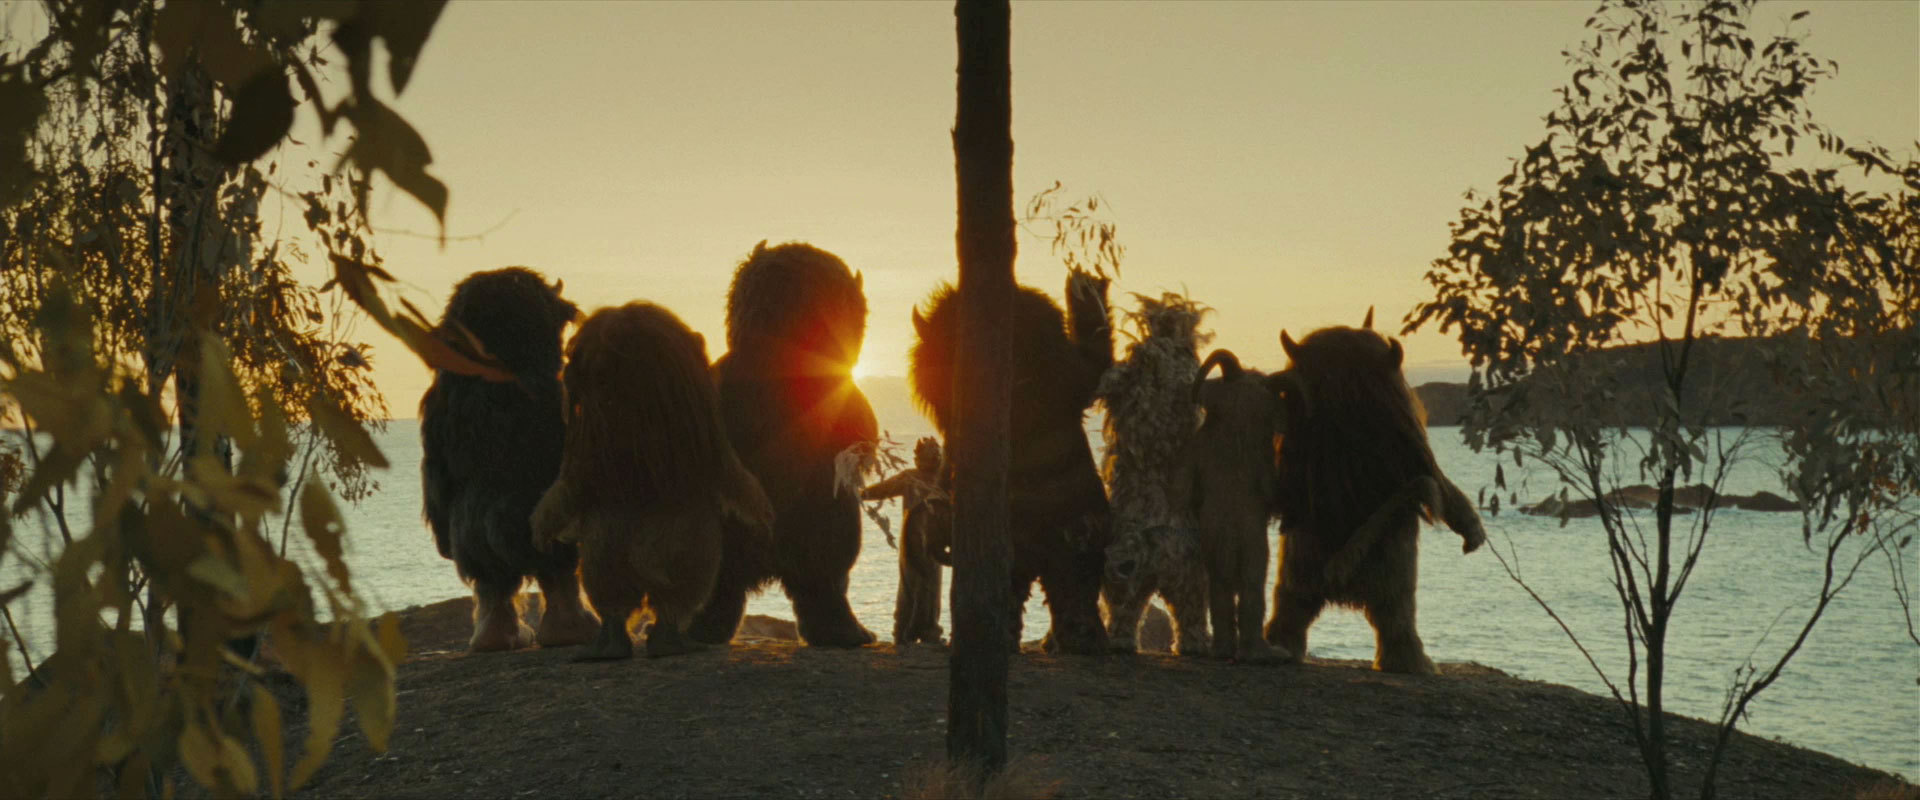 Where The Wild Things Are Movie Monsters